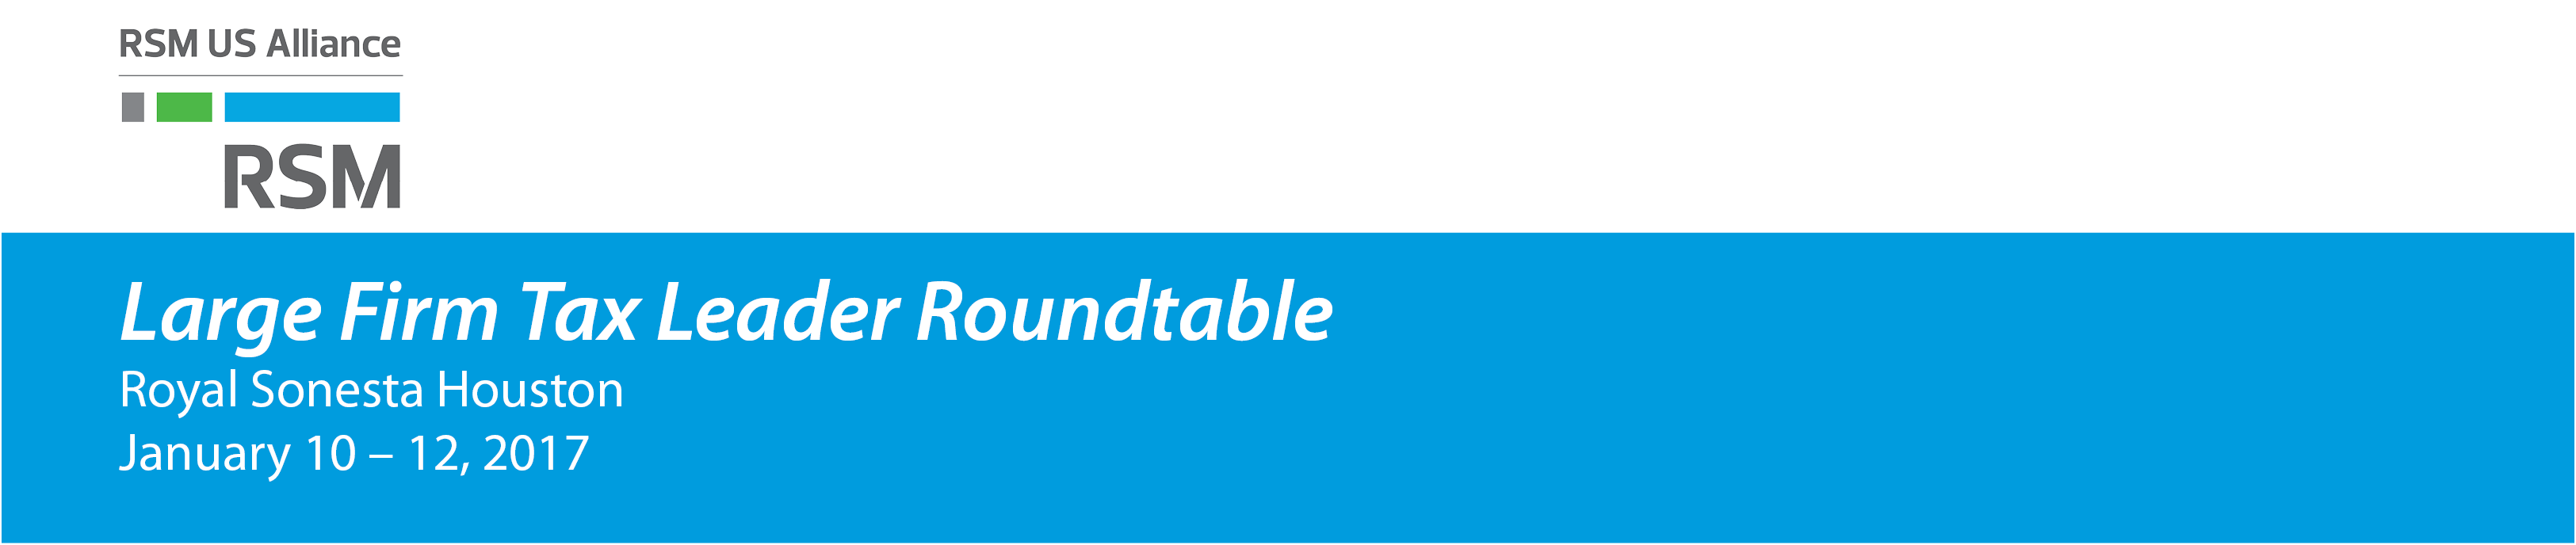 2017 Large Firm Tax Leader Roundtable